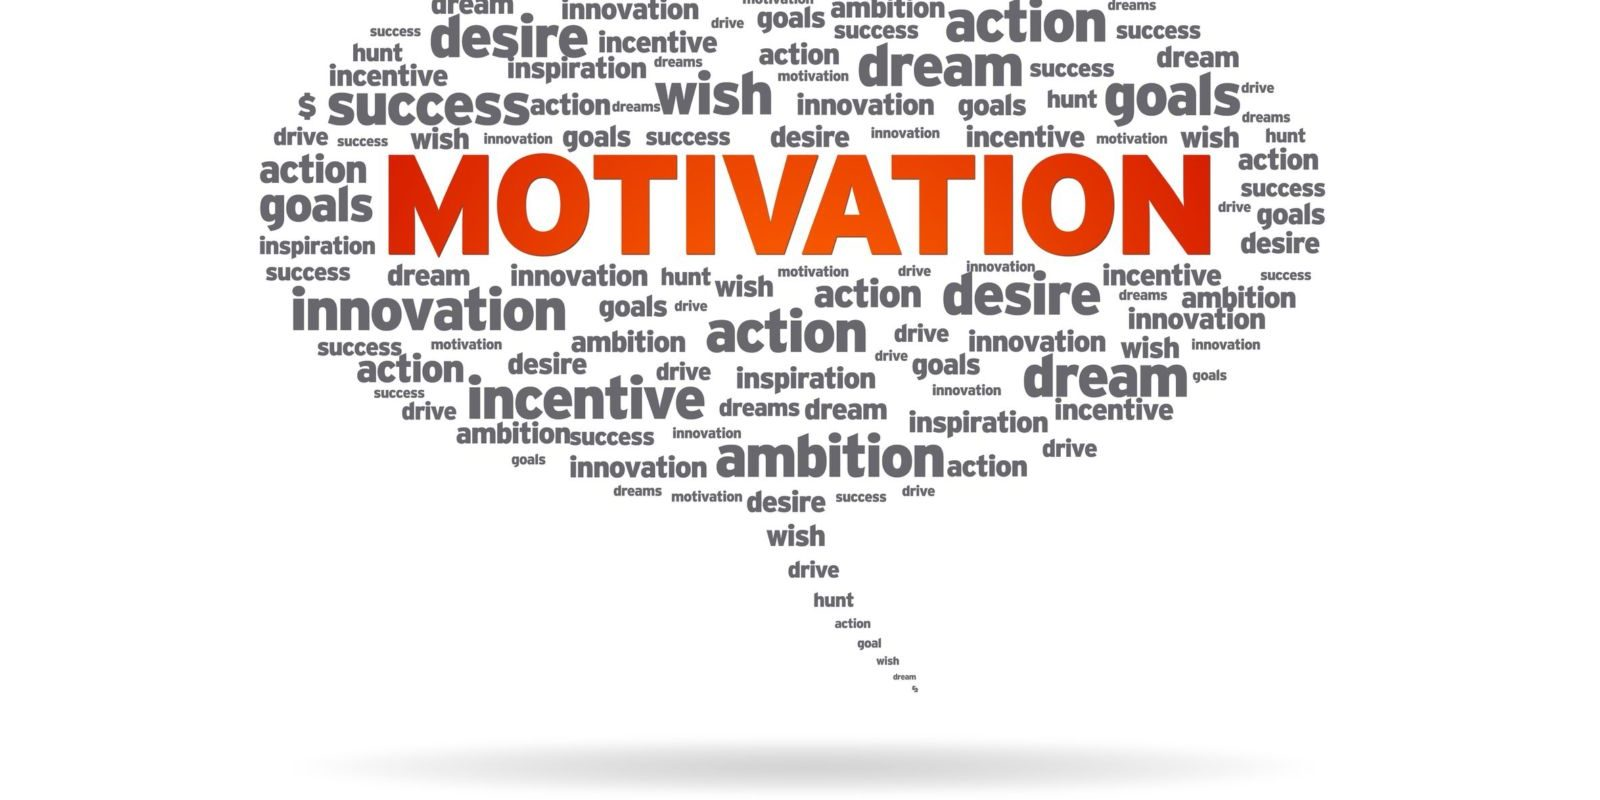 How do I motivate myself?